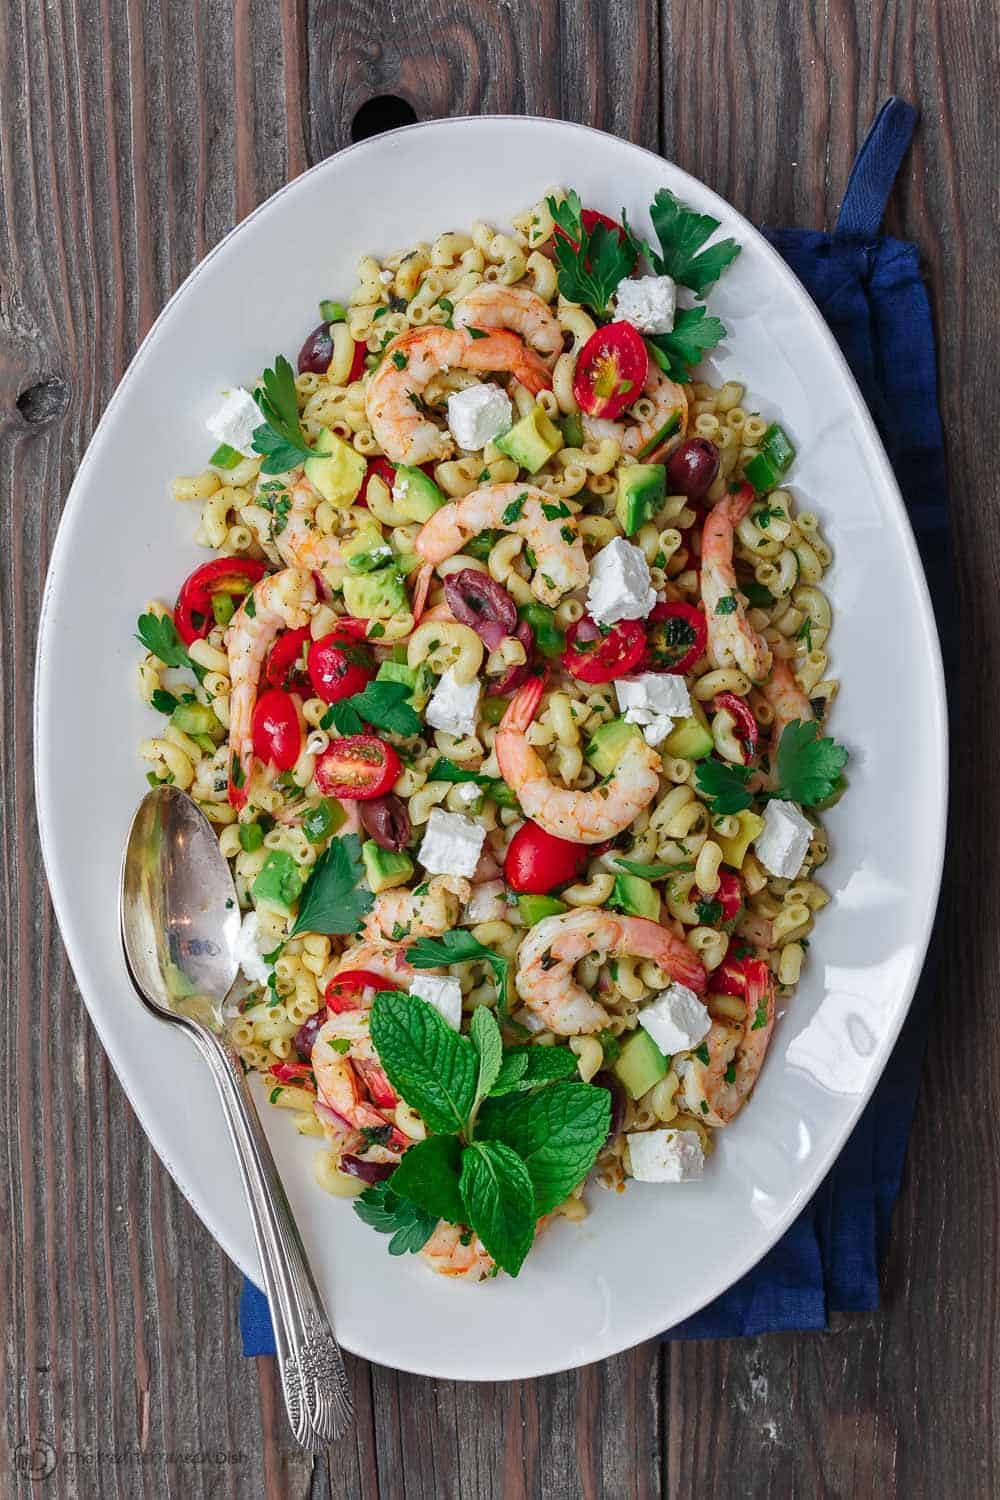 Shrimp Avocado Mediterranean Pasta Salad The Mediterranean Dish